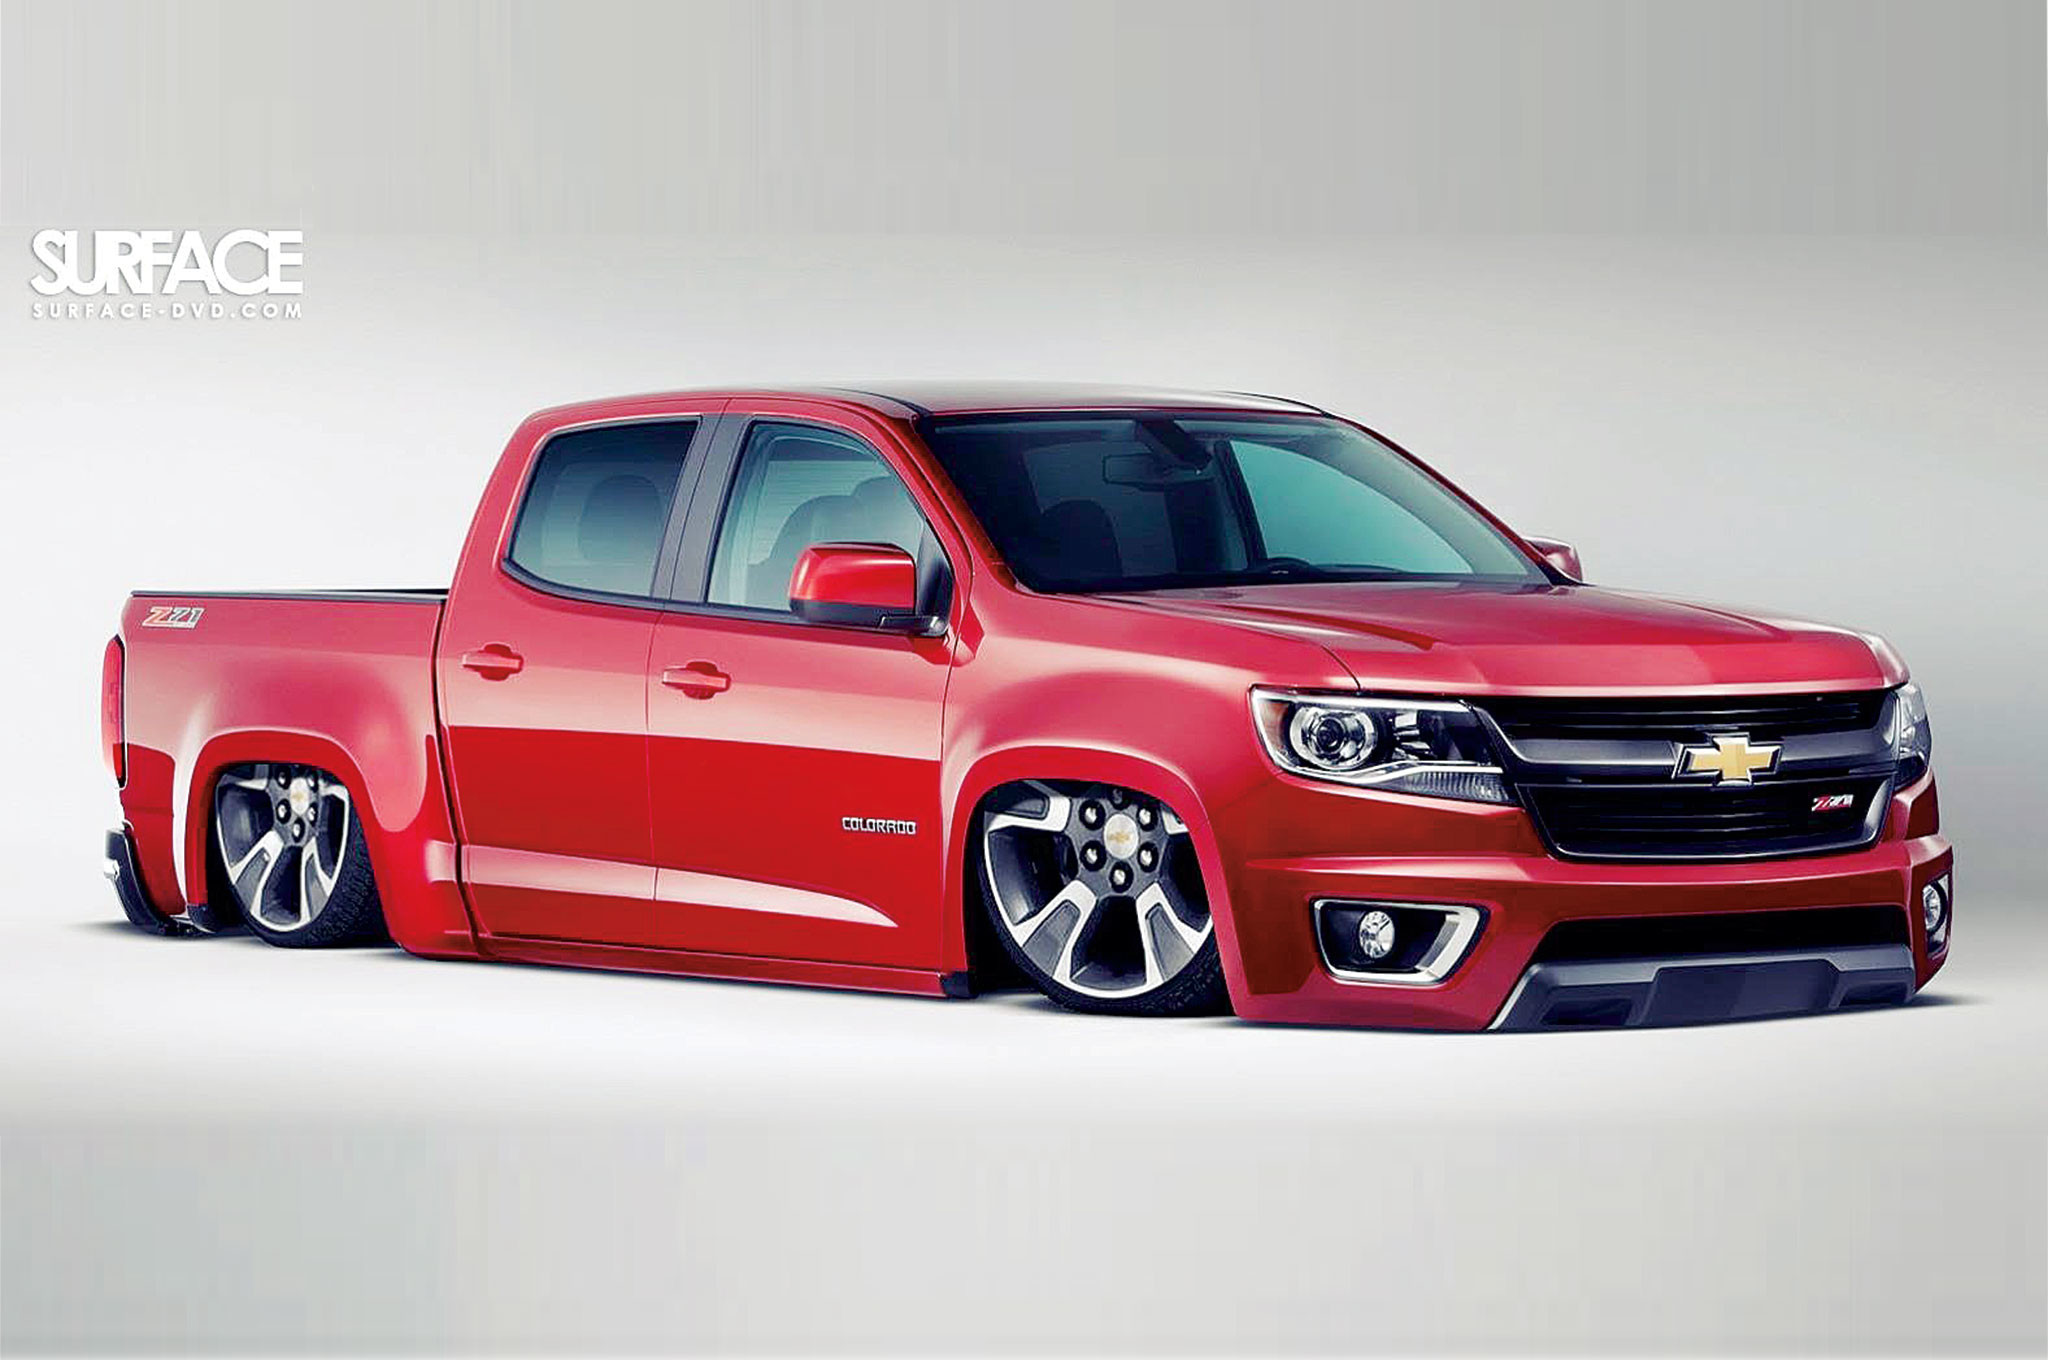 2048x1360 2015 Chevrolet Colorado Cars Wallpaper - http://hdcarwallfx.com/2015-